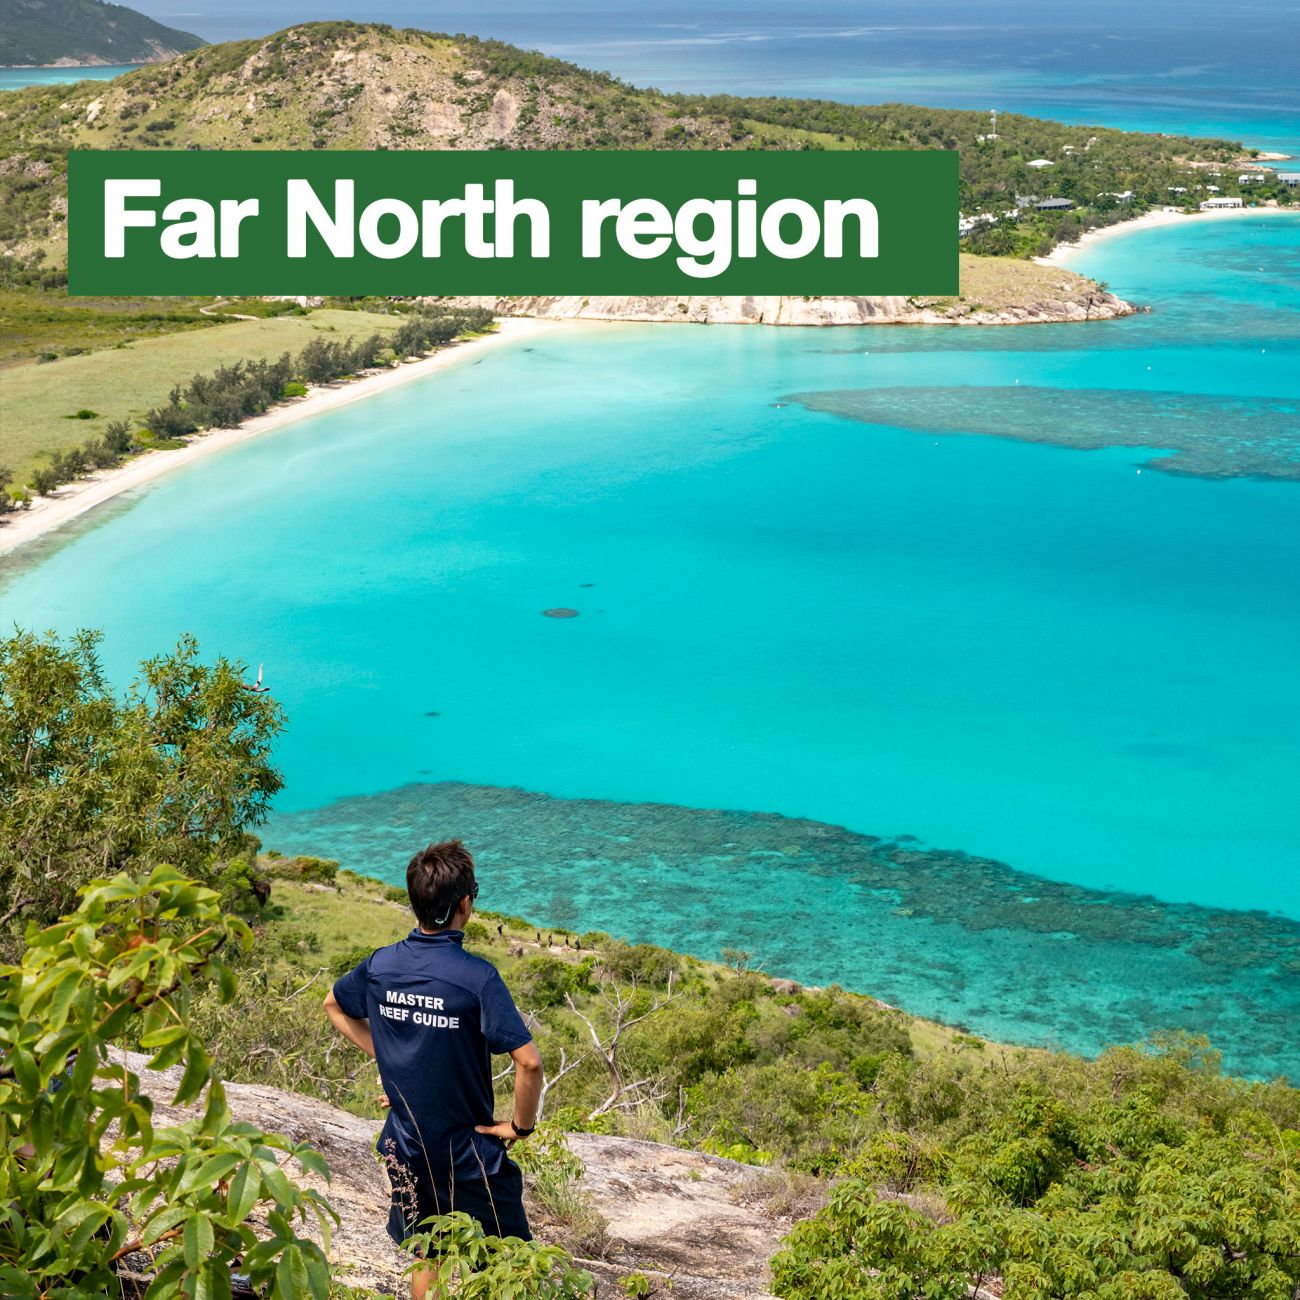 Far North region